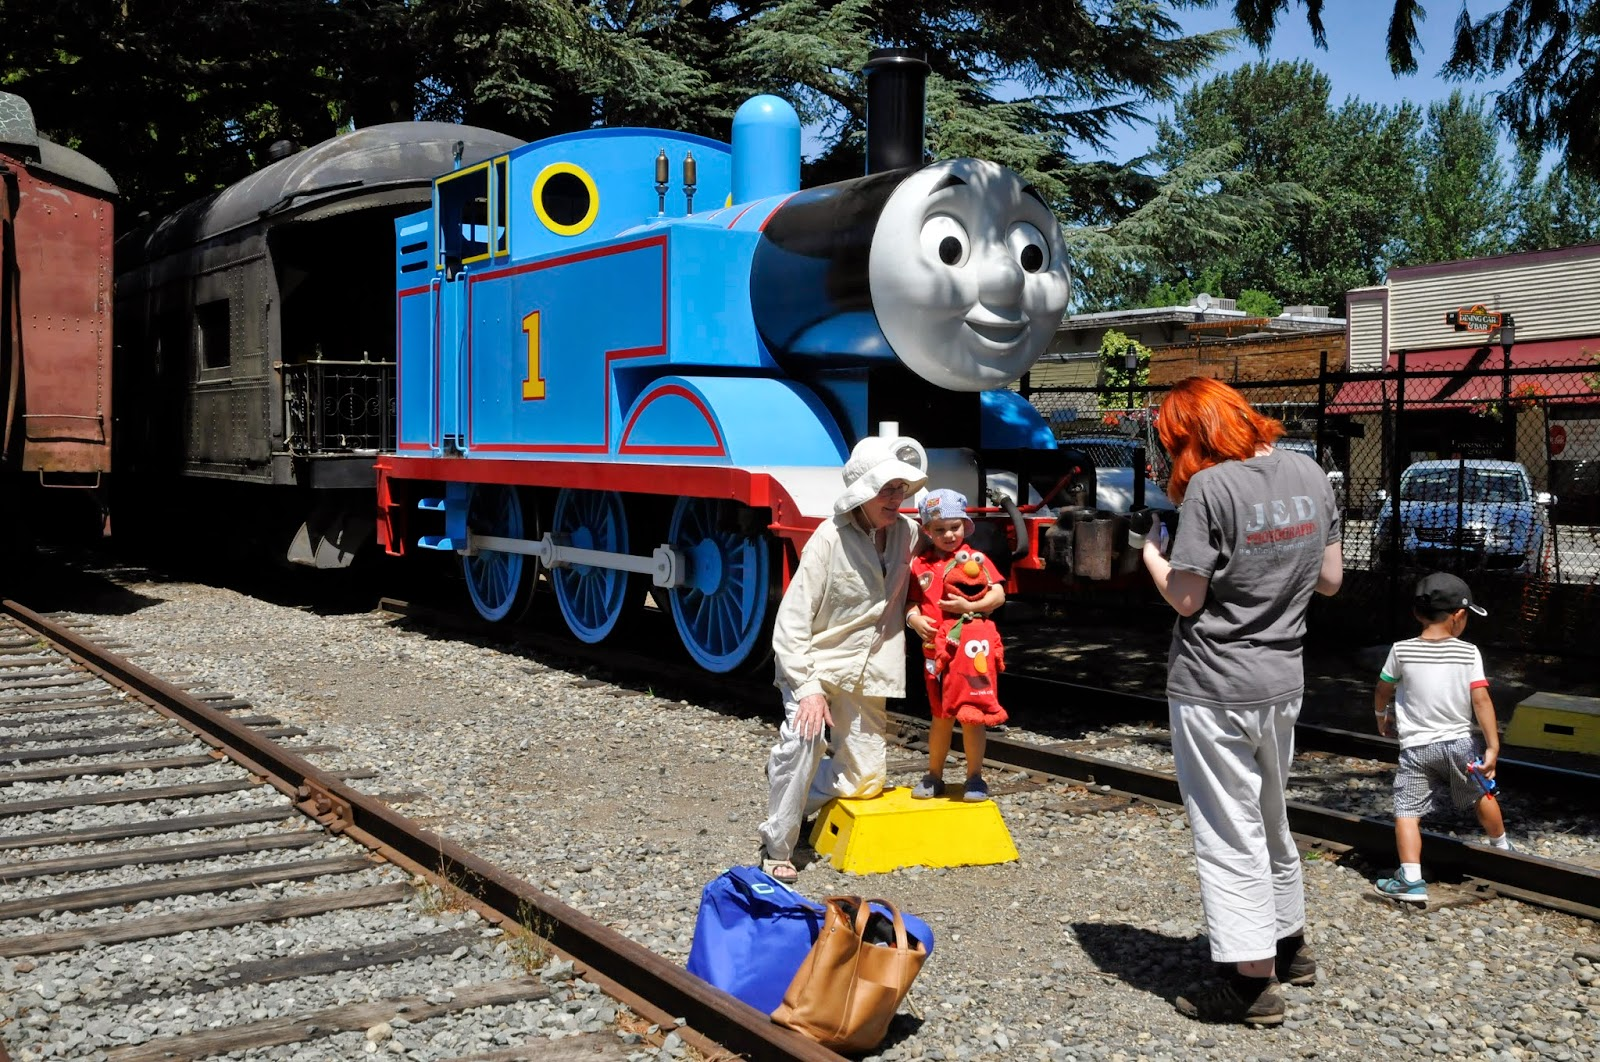 Thomas the Tank Engine poses for photos with children of all ages.